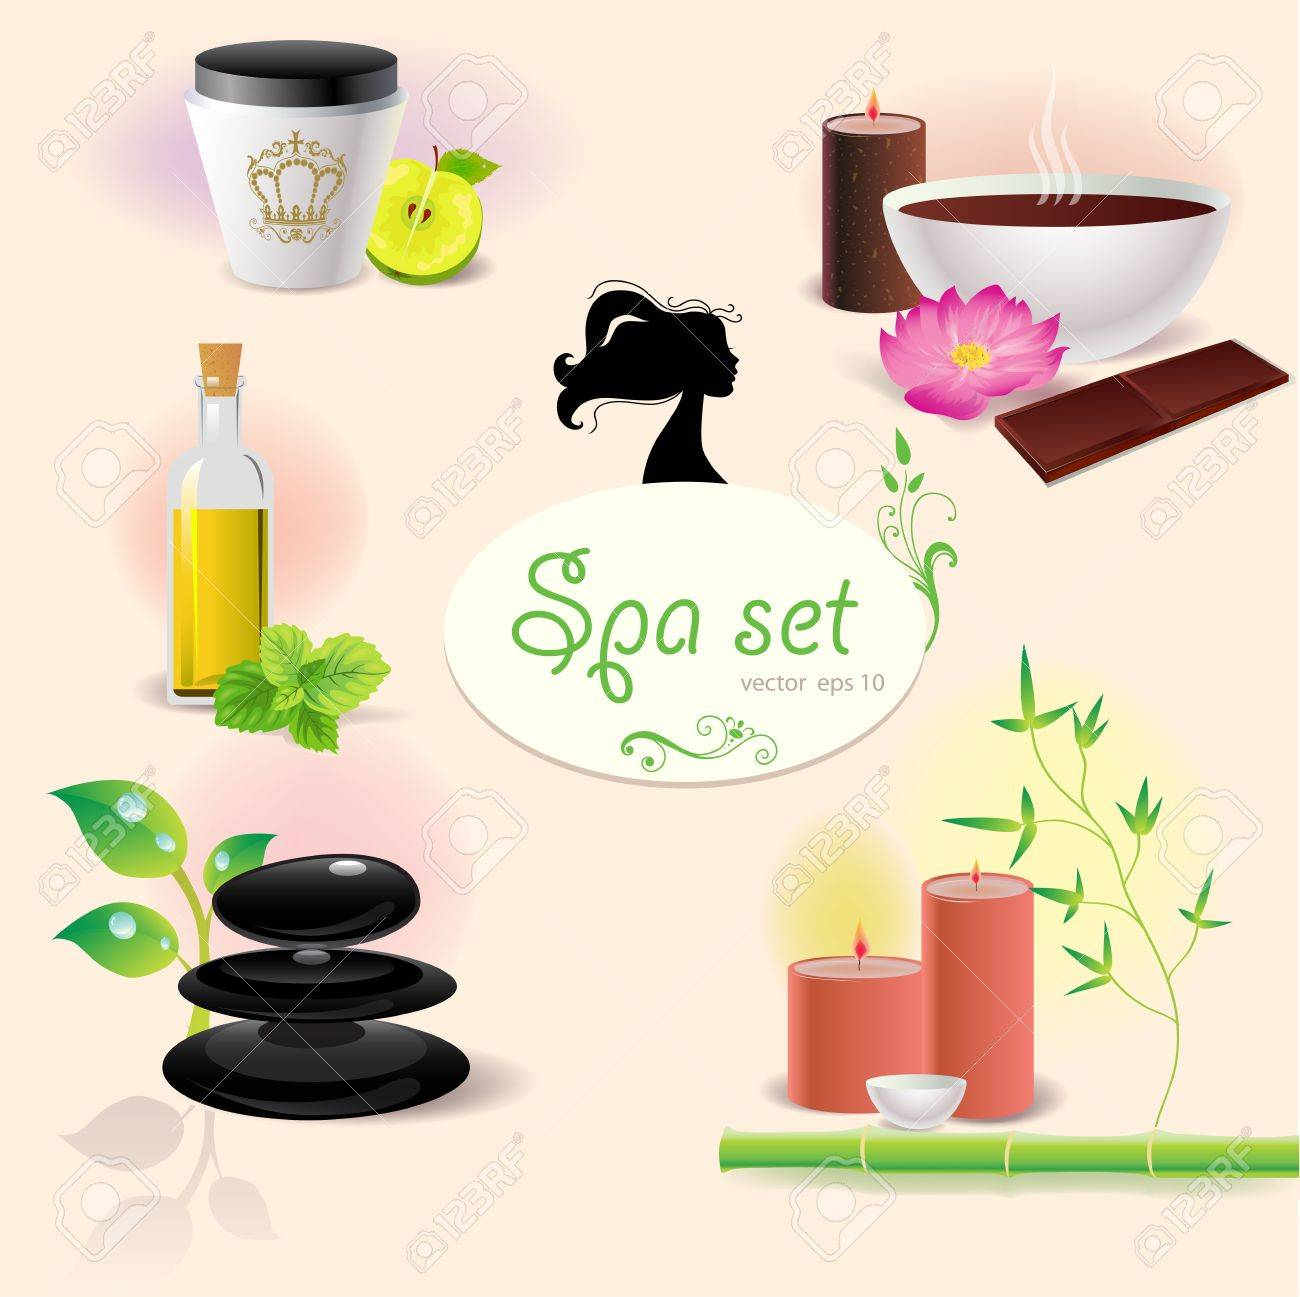 Set of illustration of spa elements Stock Vector - 11932395